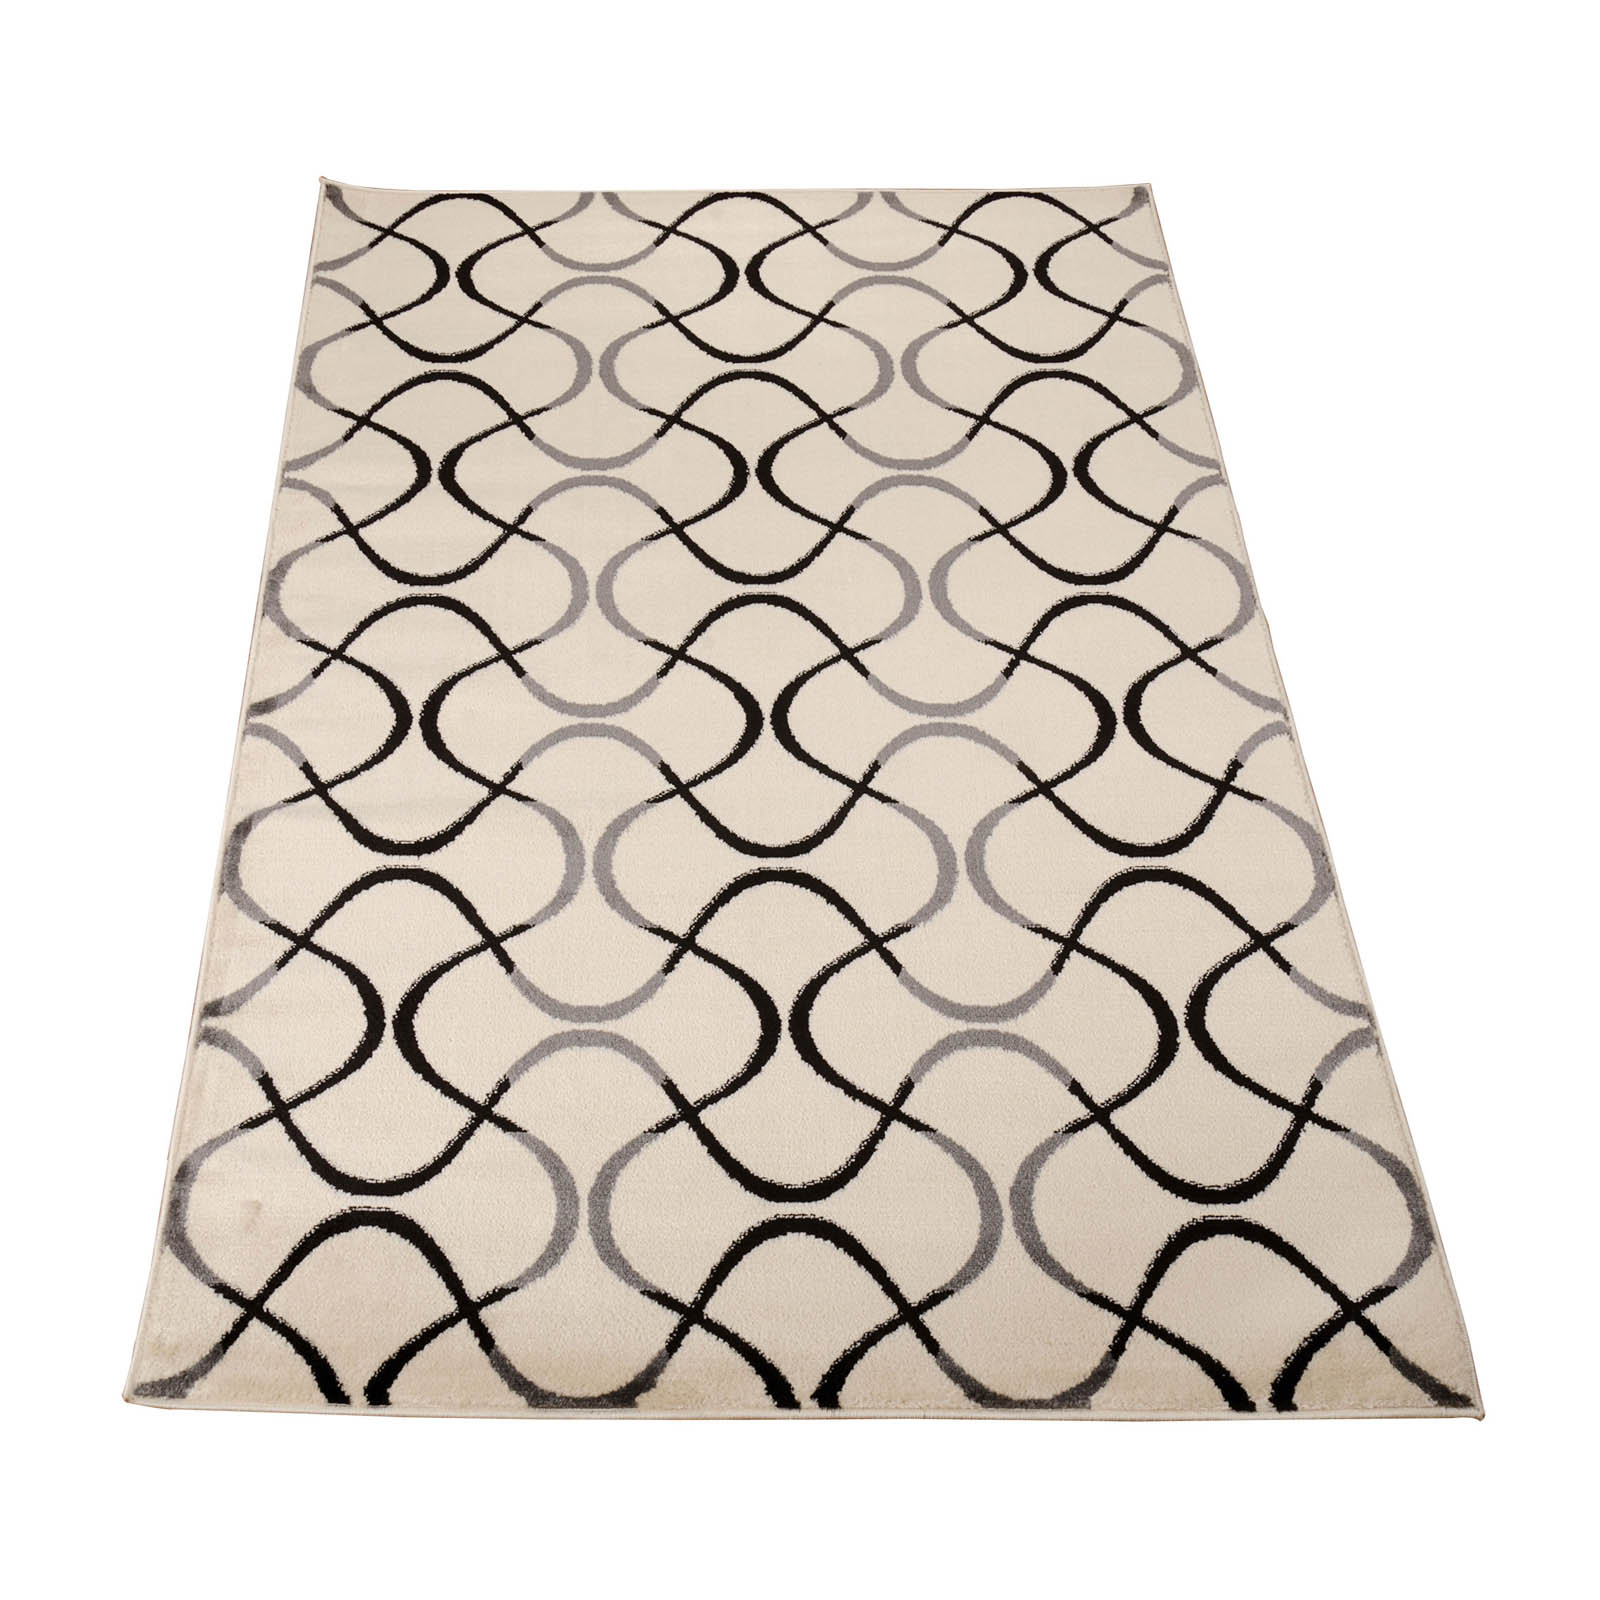 Nova Rugs NO103 in Cream